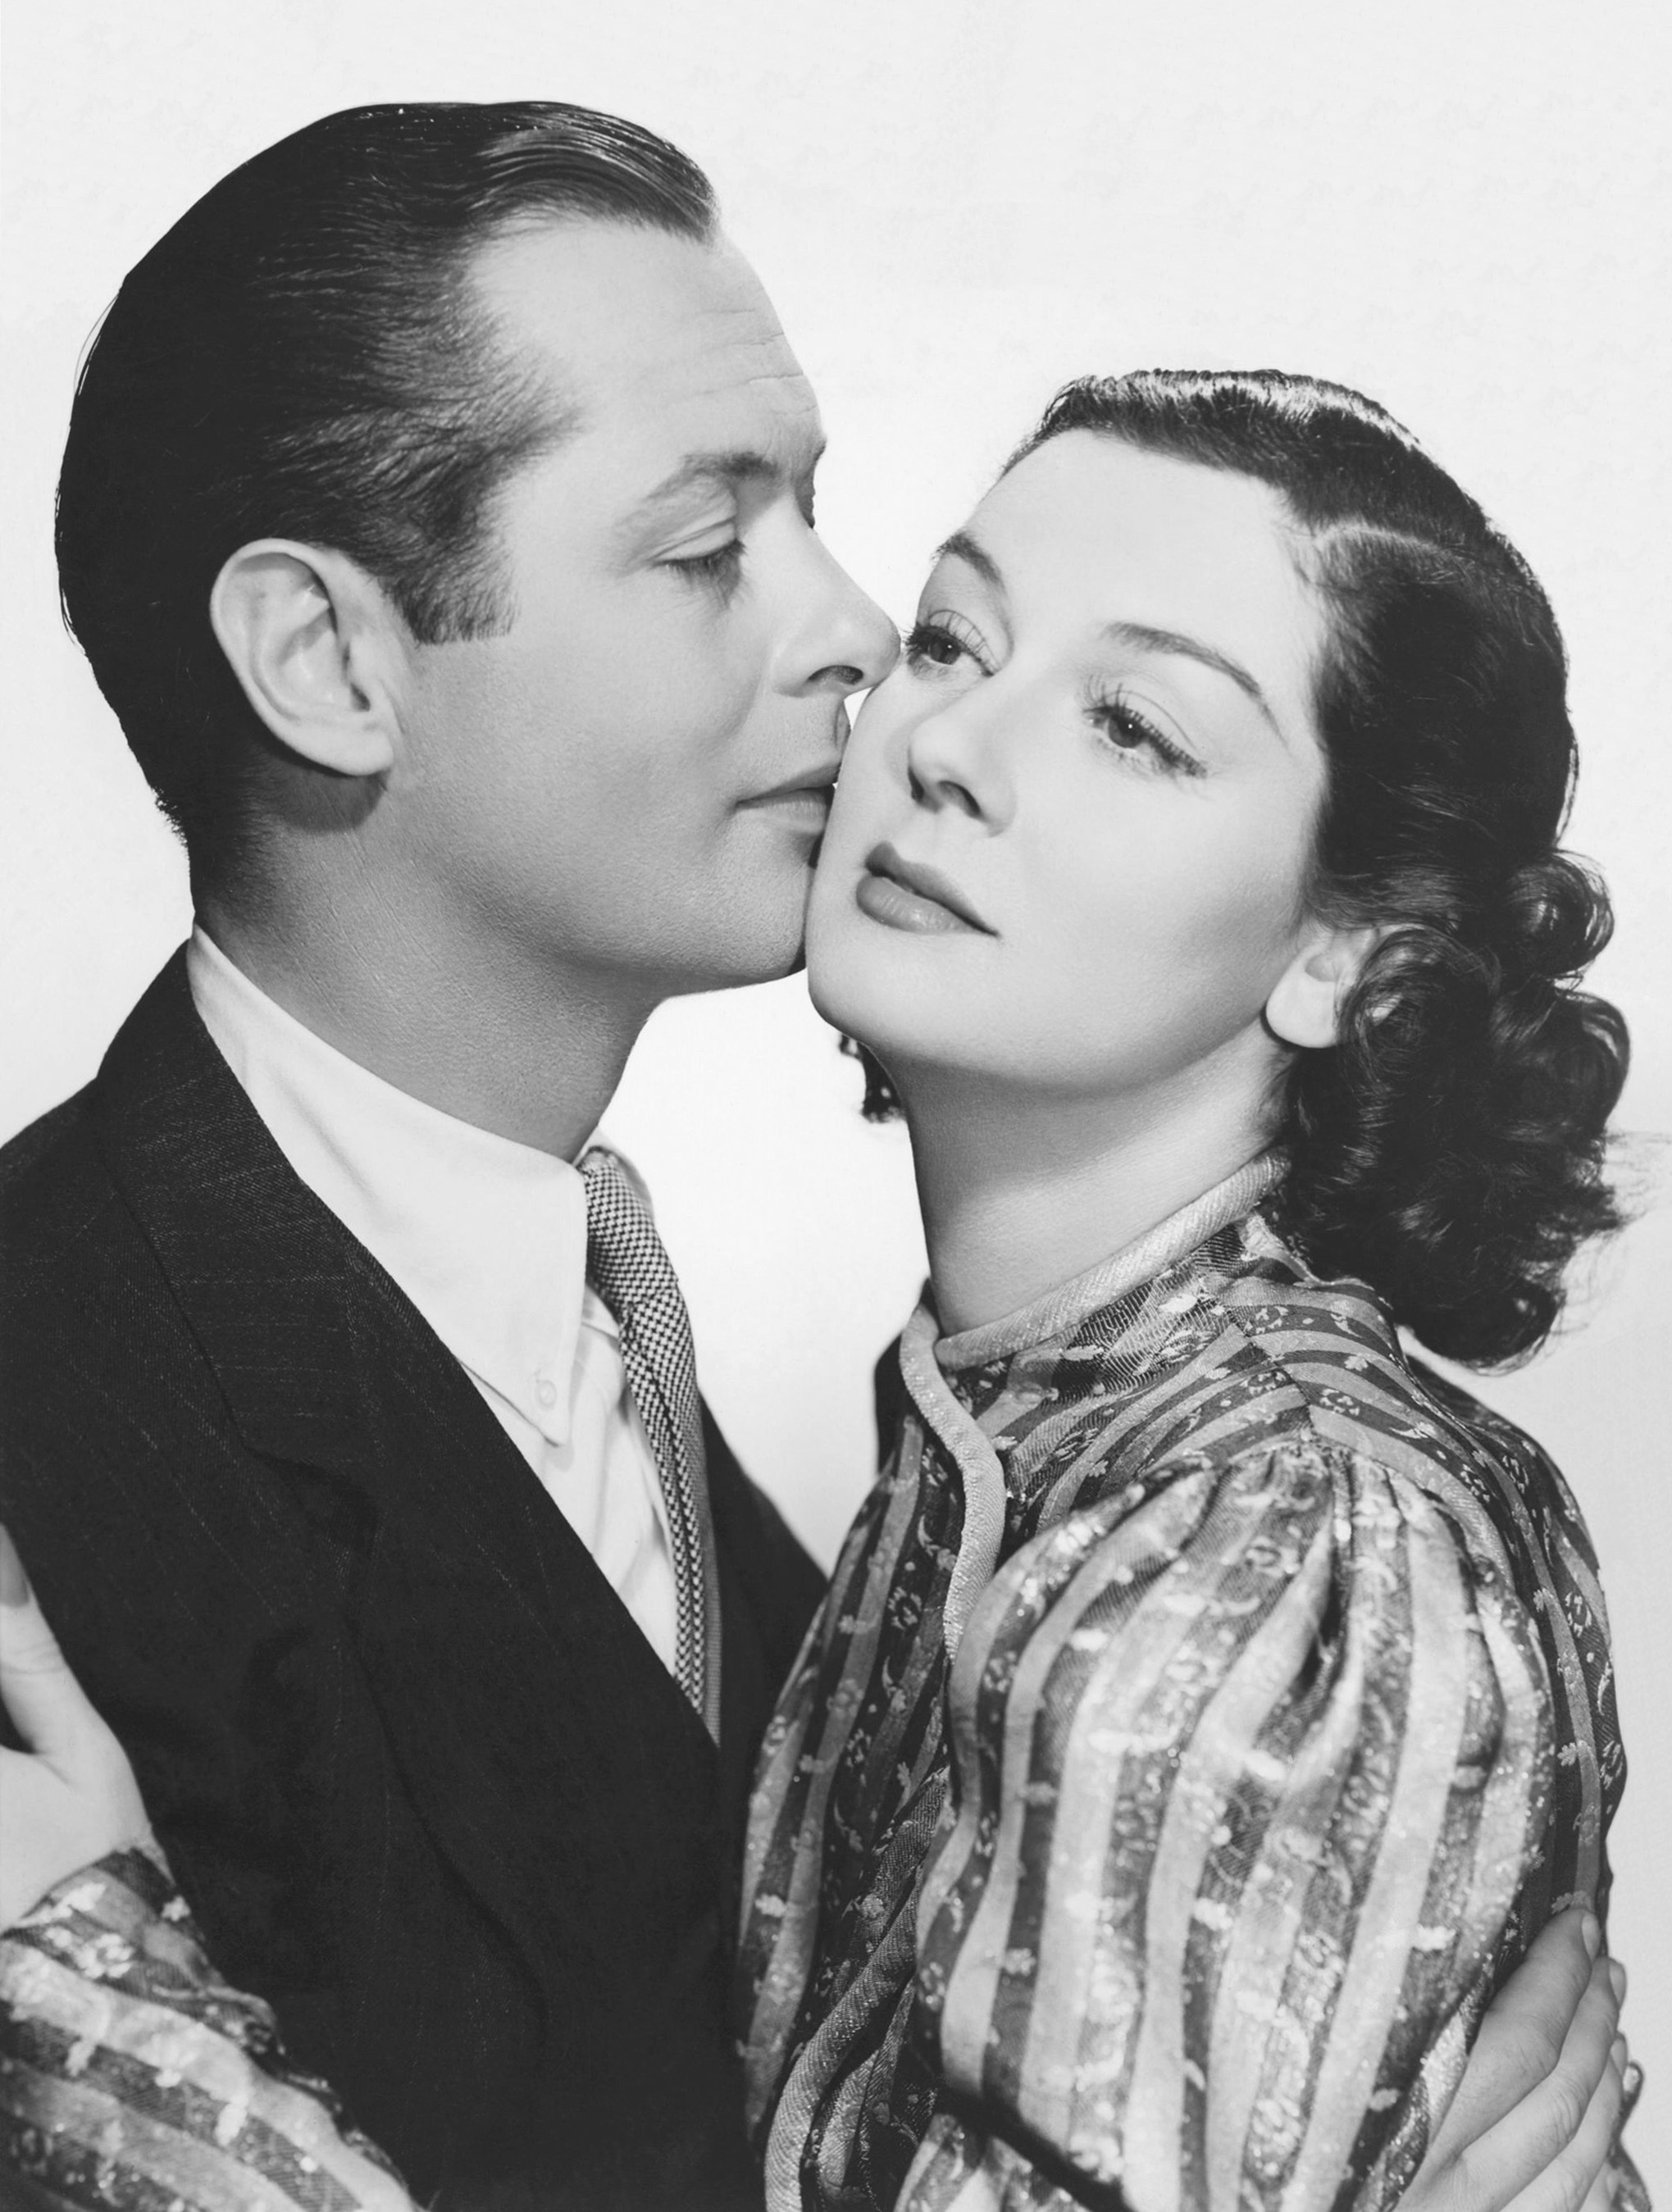 Robert Montgomery in Live, Love and Learn with With Rosalind Russell